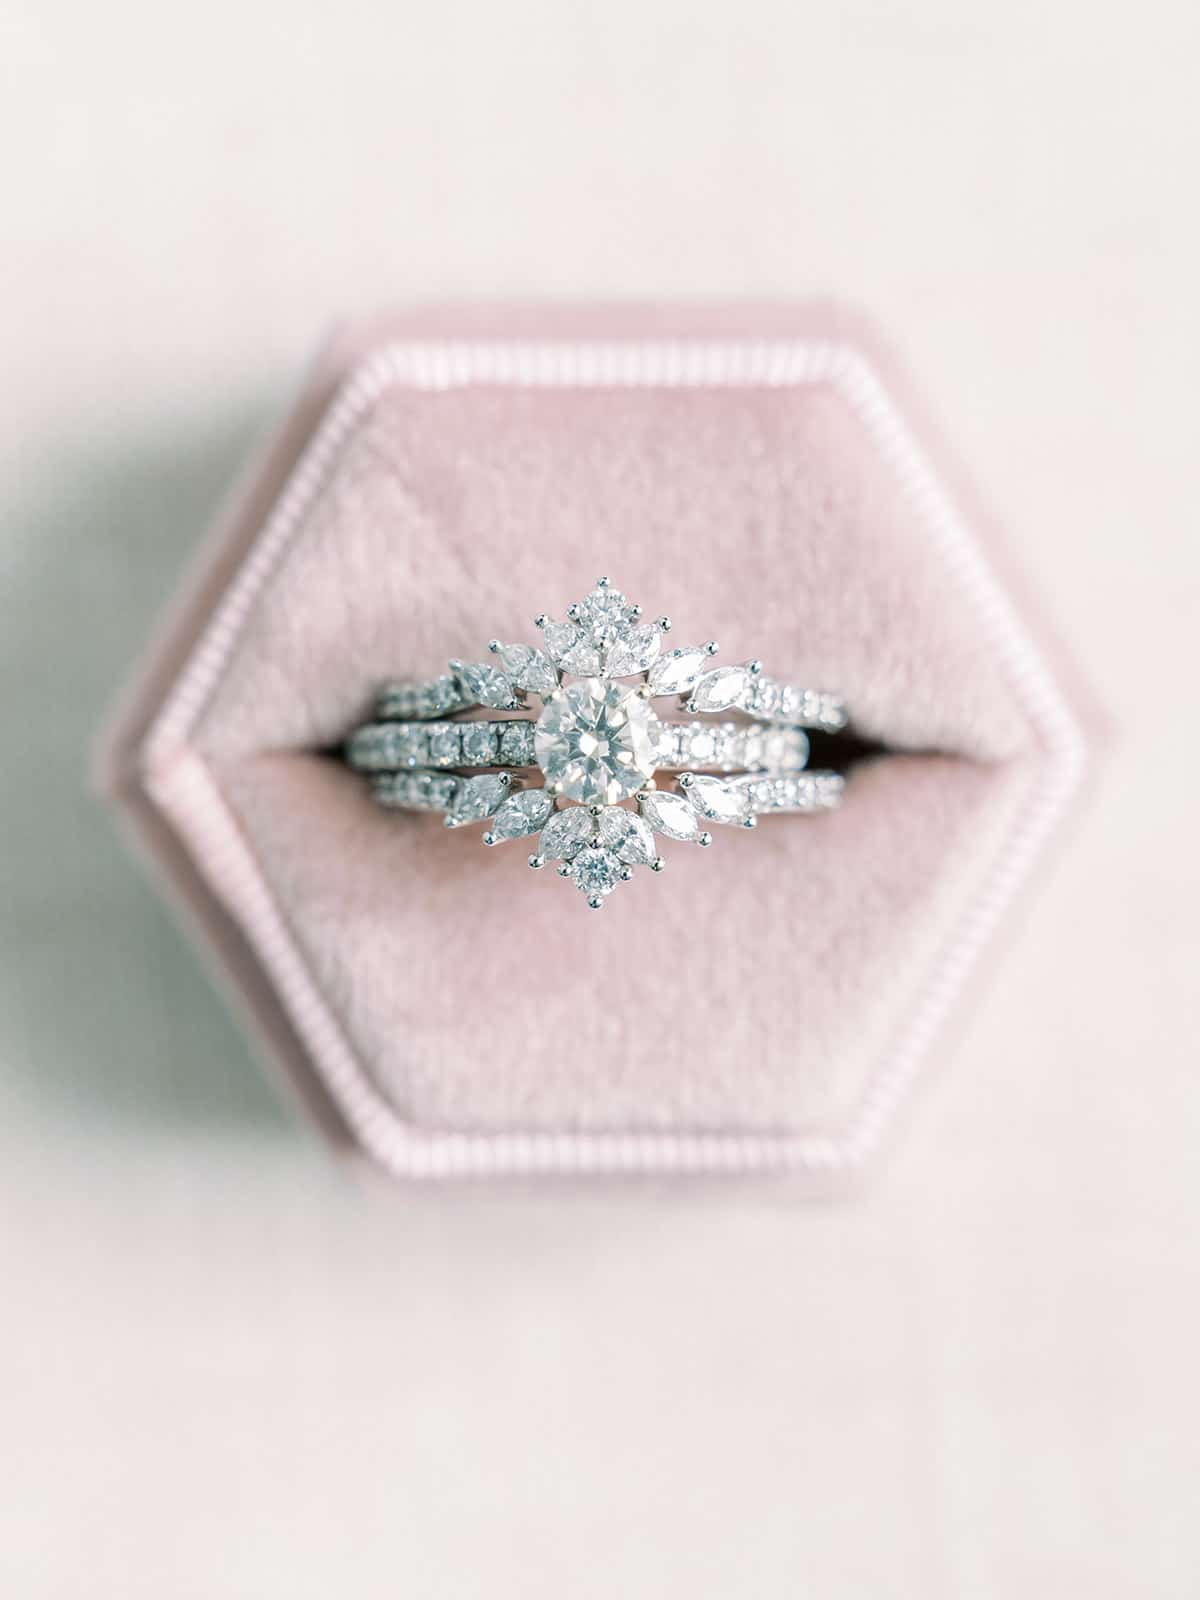 Round engagement ring and wedding bands | Nashville Bride Guide